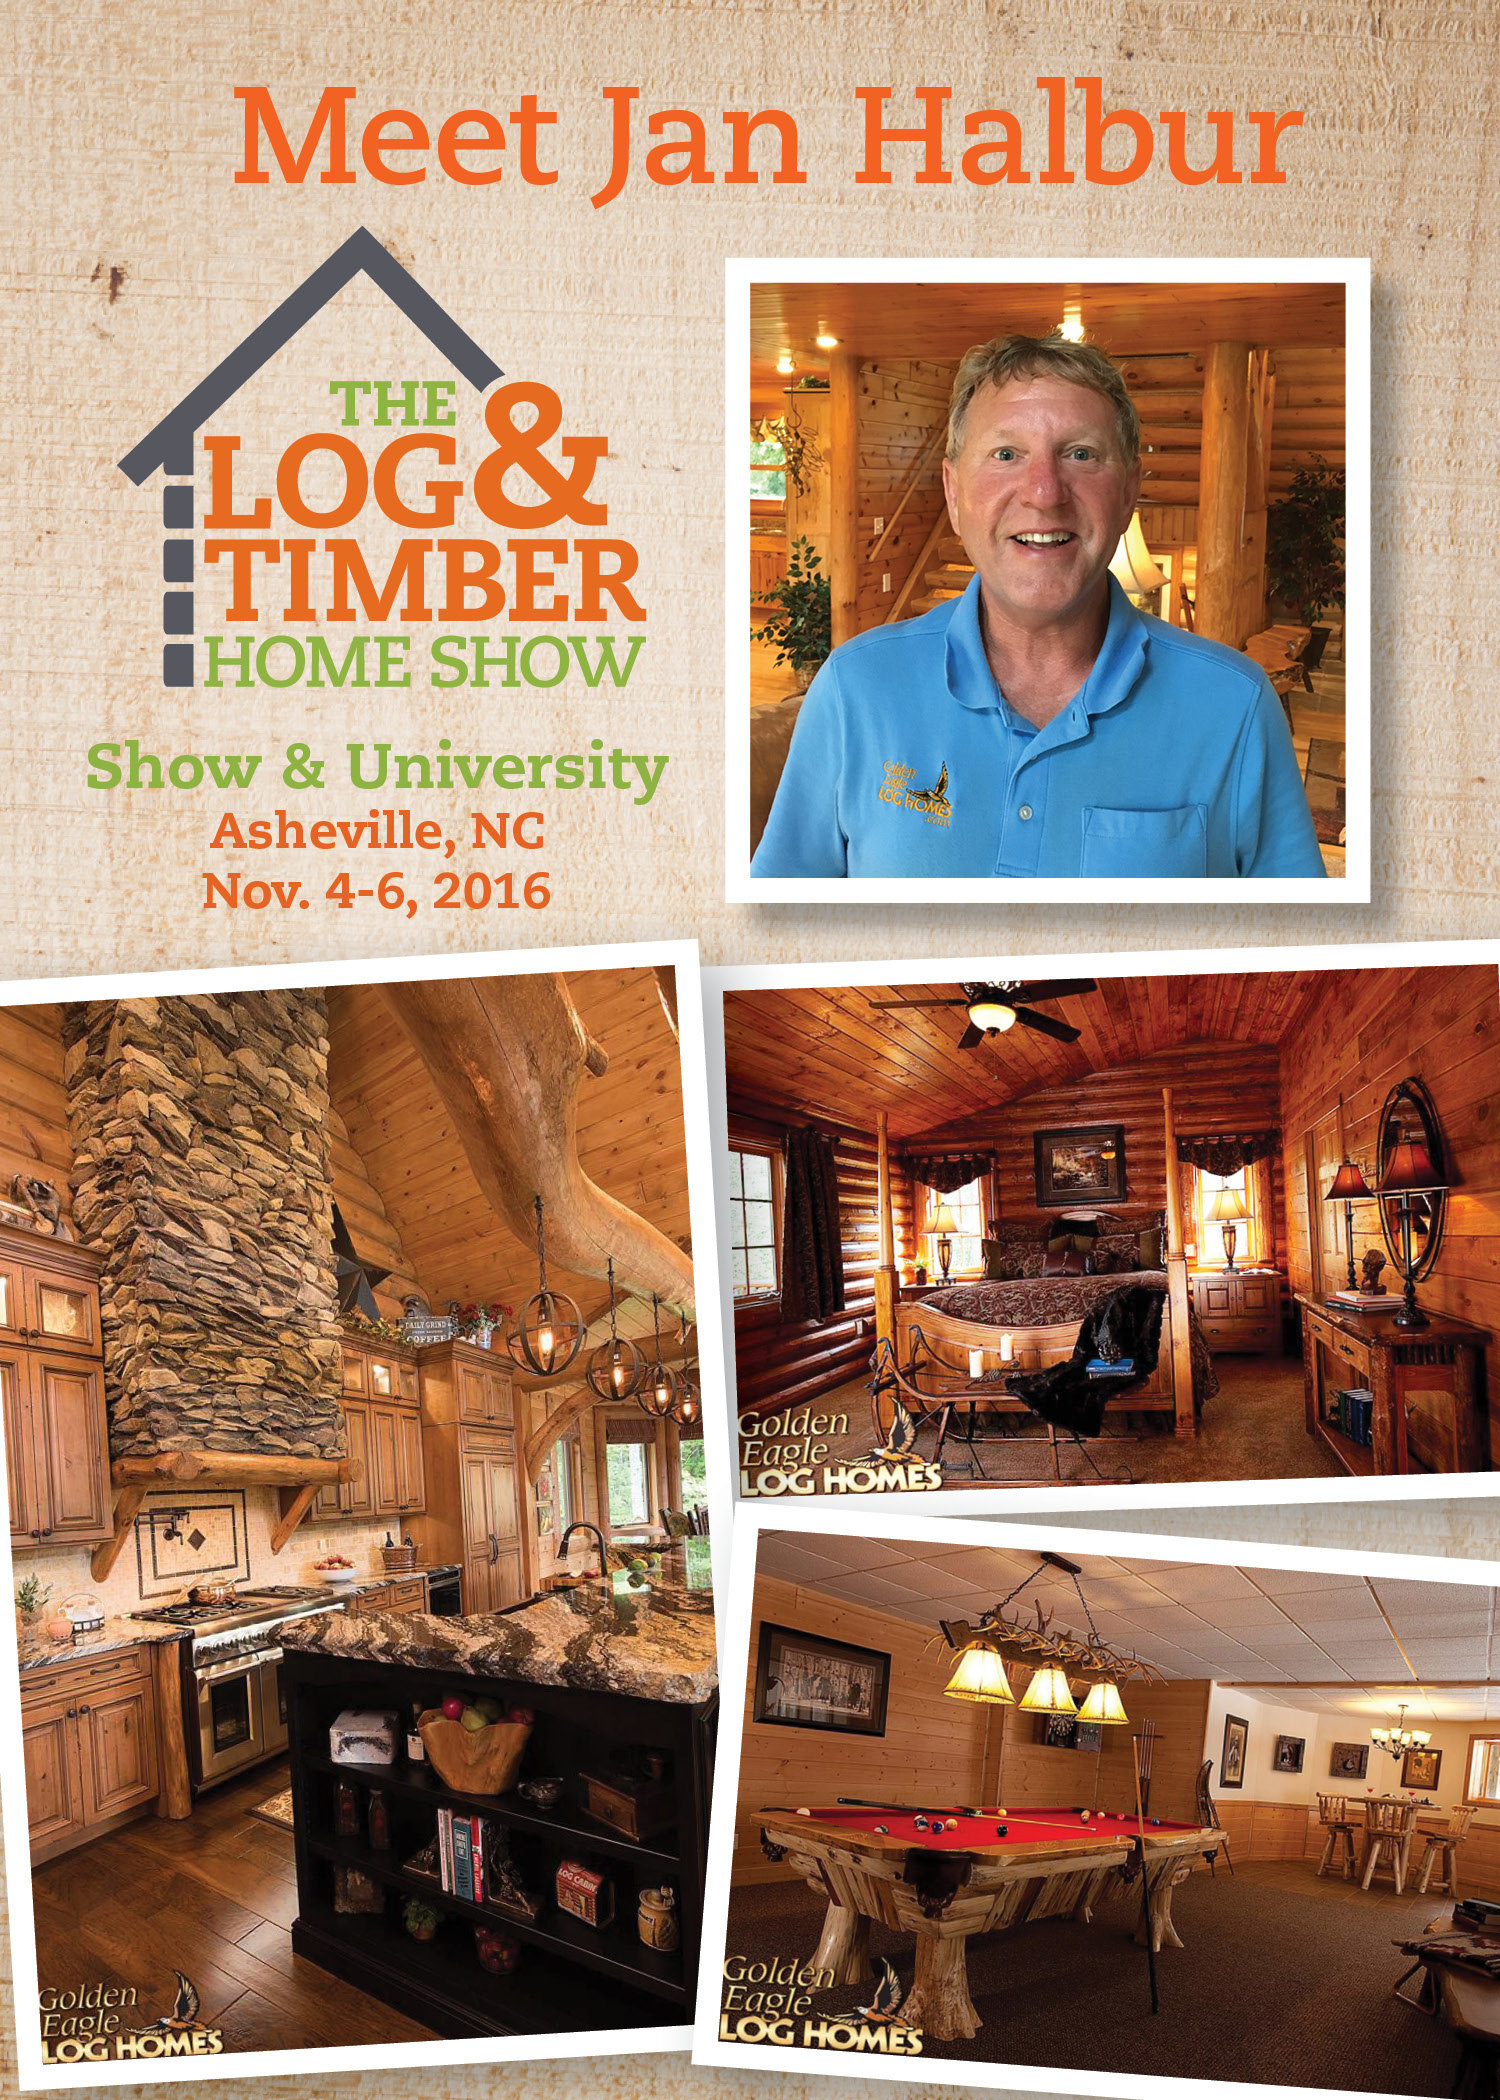 Asheville, NC Log & Timber Home Show| Jan Halbur| Golden Eagle Log Homes| Free Workshop